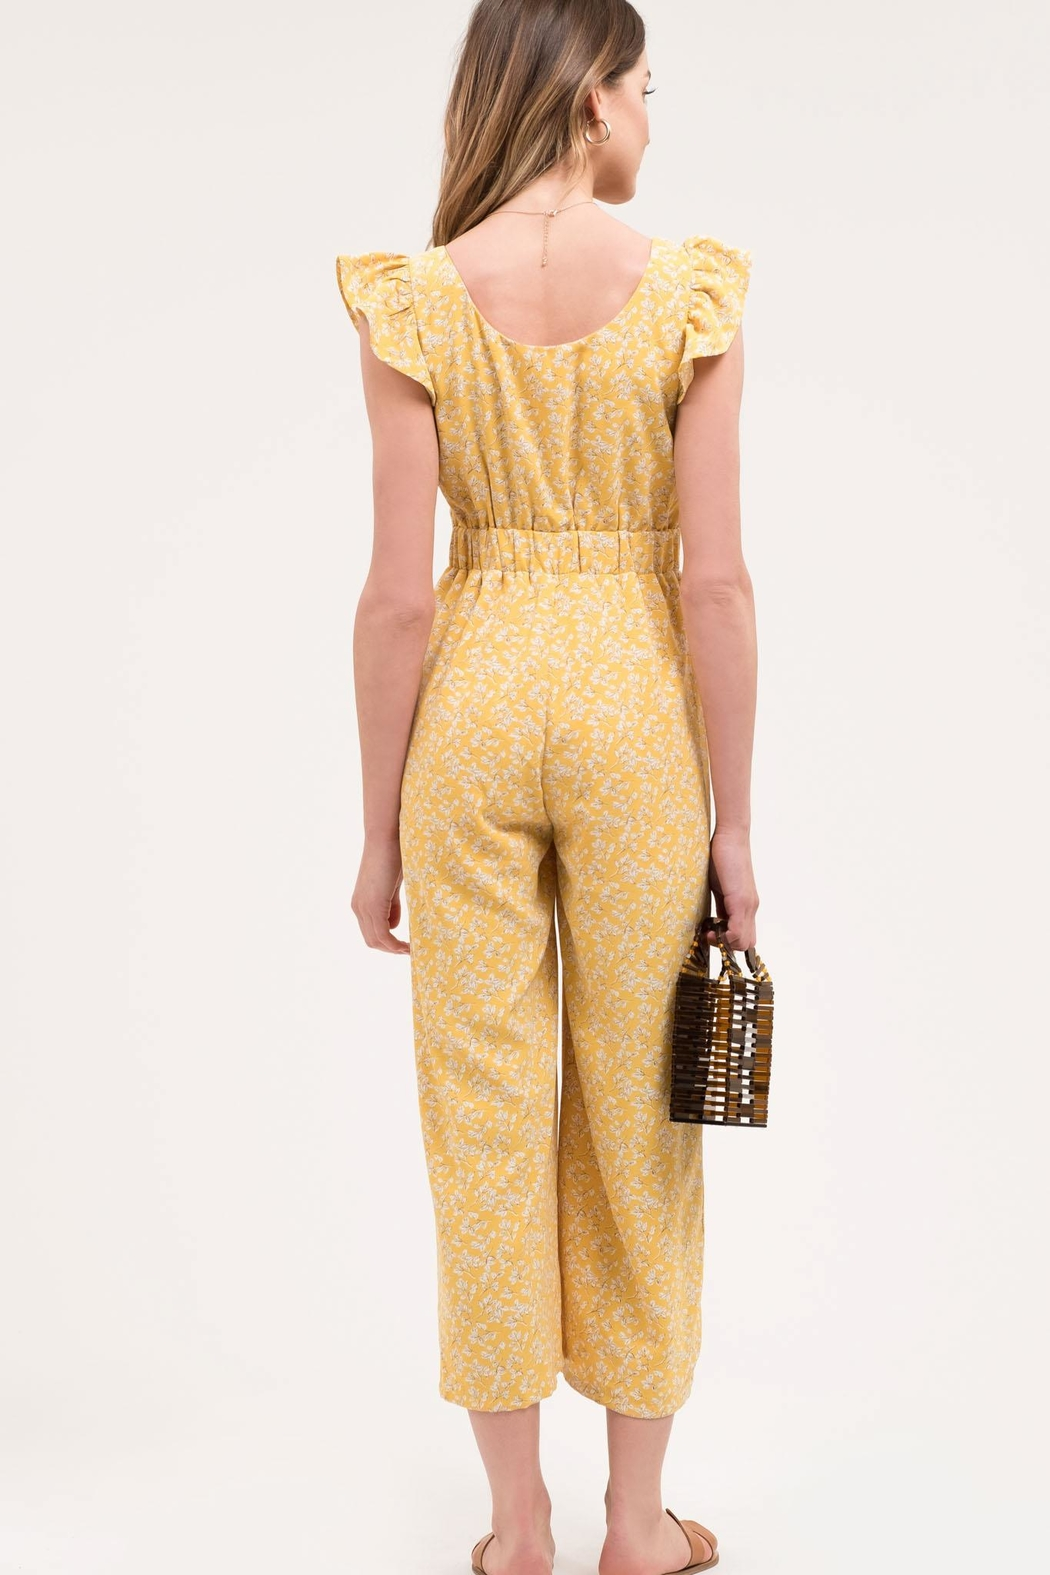 Blu Pepper Yellow Floral Jumpsuit - Front Full Image